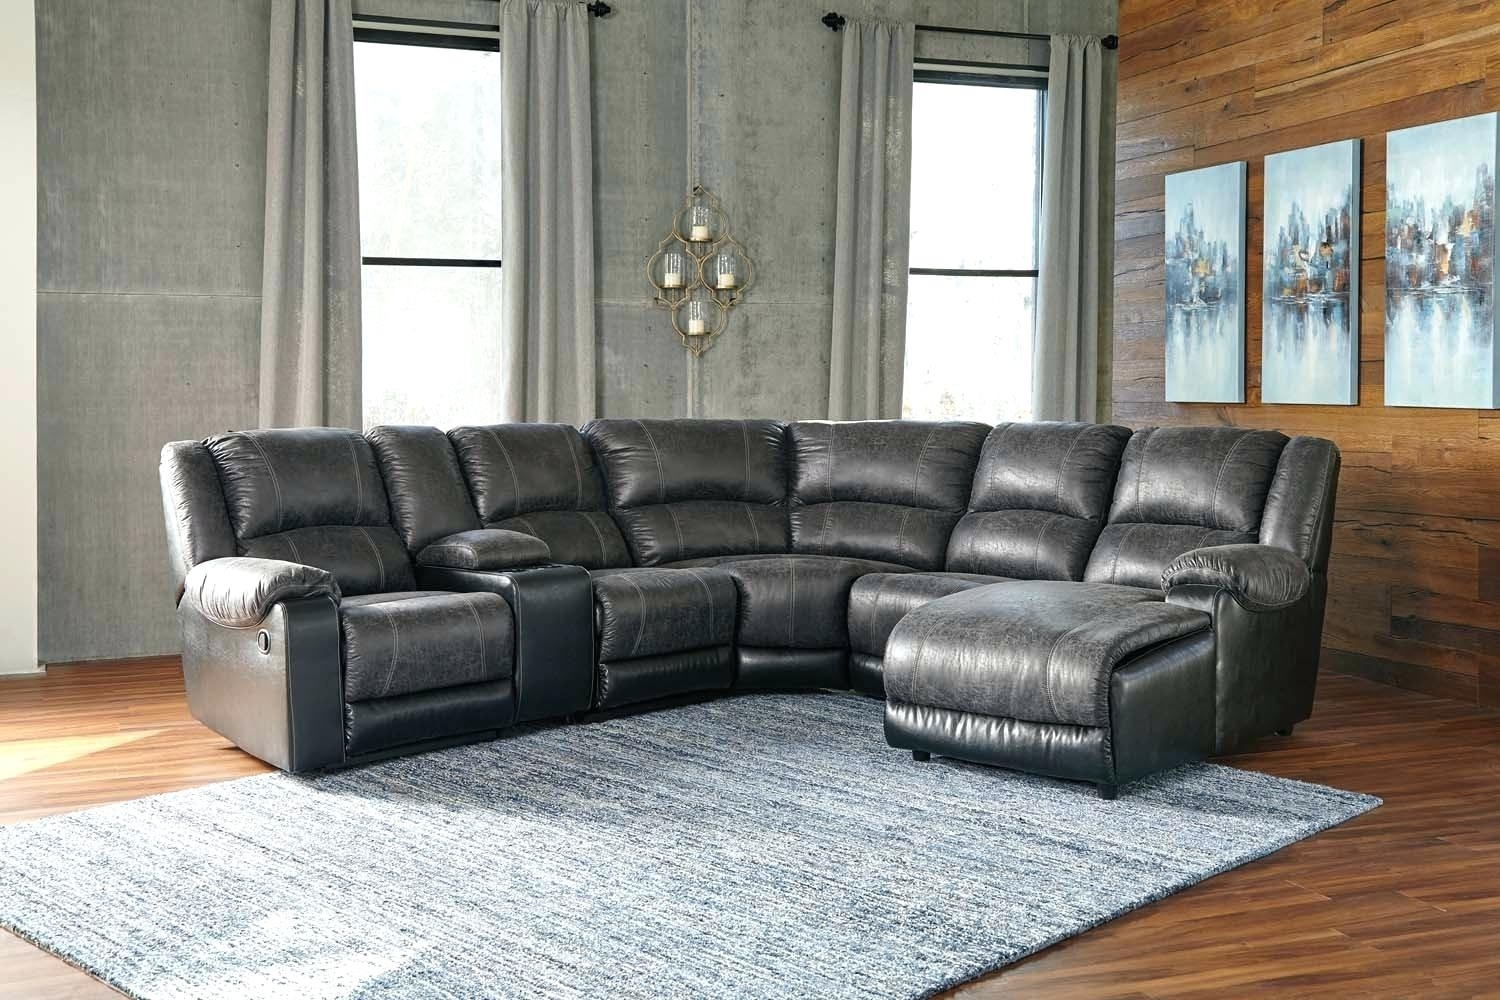 Beckett Leather 6 Piece Chaise Sectional Sofa With 2 Power Recliners With Regard To Calder Grey 6 Piece Manual Reclining Sectionals (View 21 of 25)